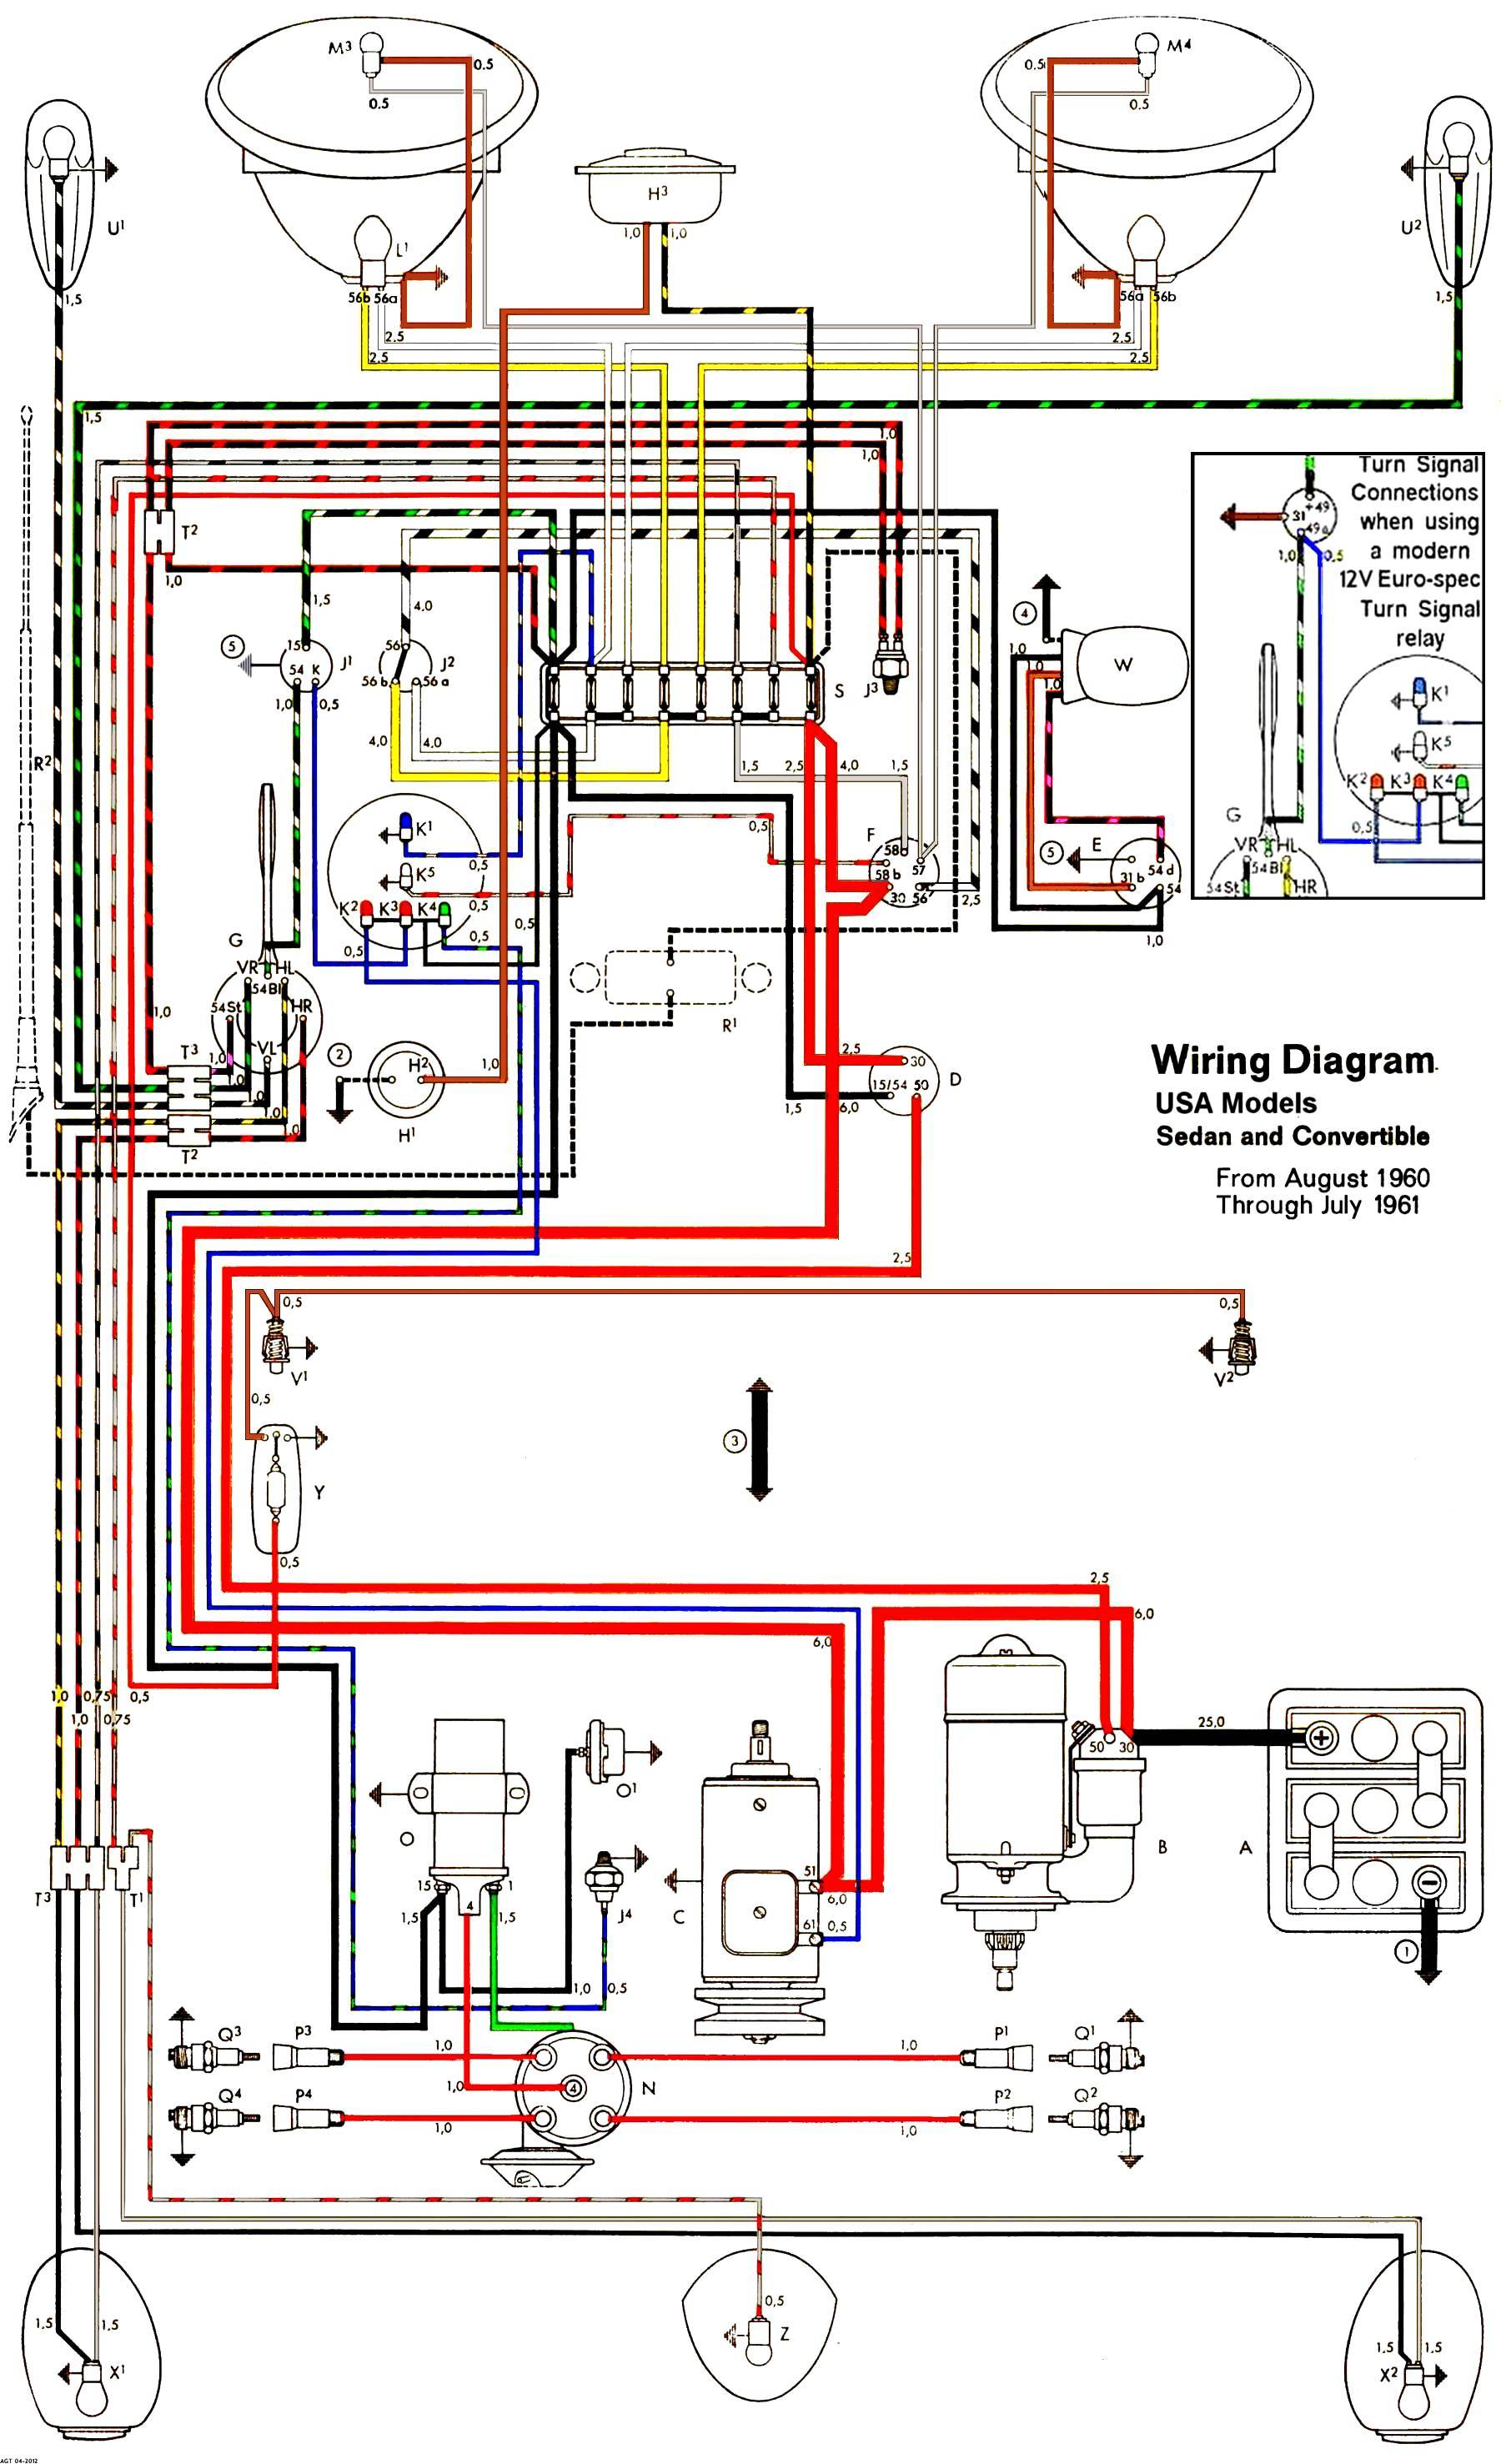 1960 vw bug wiring wiring diagram detailed 69 VW Bug Parts thesamba com type 1 wiring diagrams 69 vw beetle wiring diagram 1960 vw bug wiring